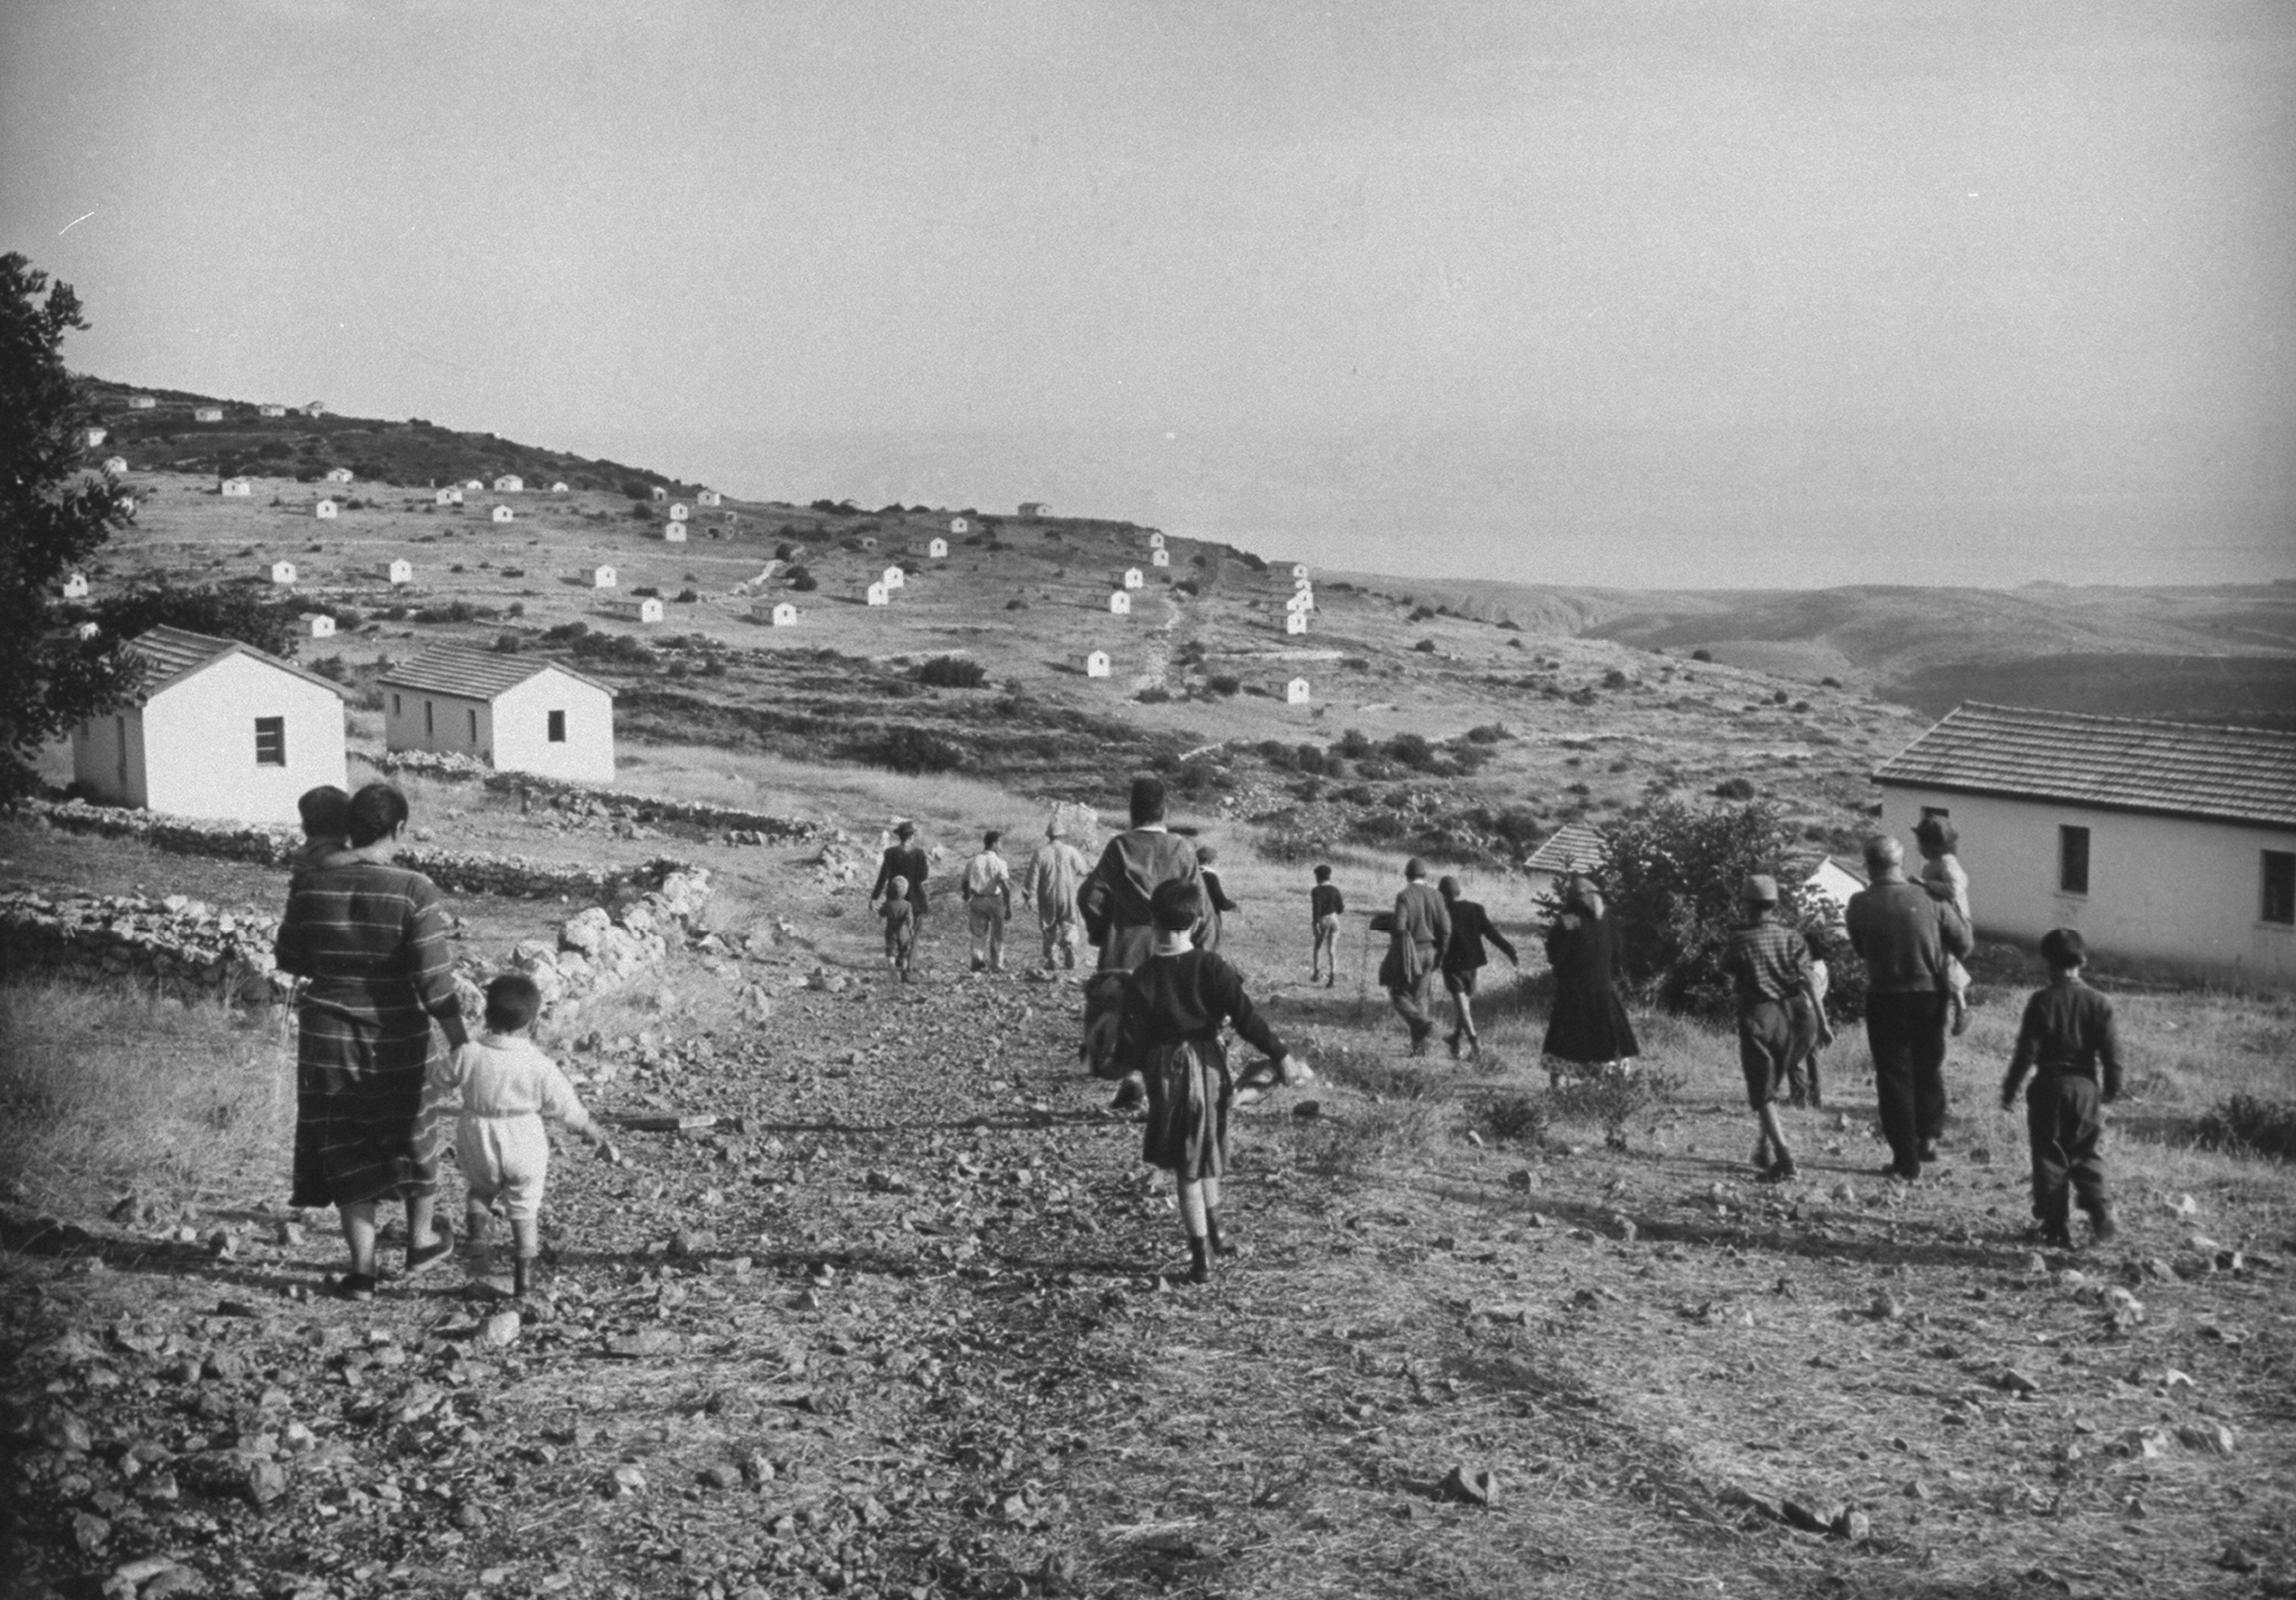 Jewish settlers walking through hilly region above Lake Galilee, 1954.